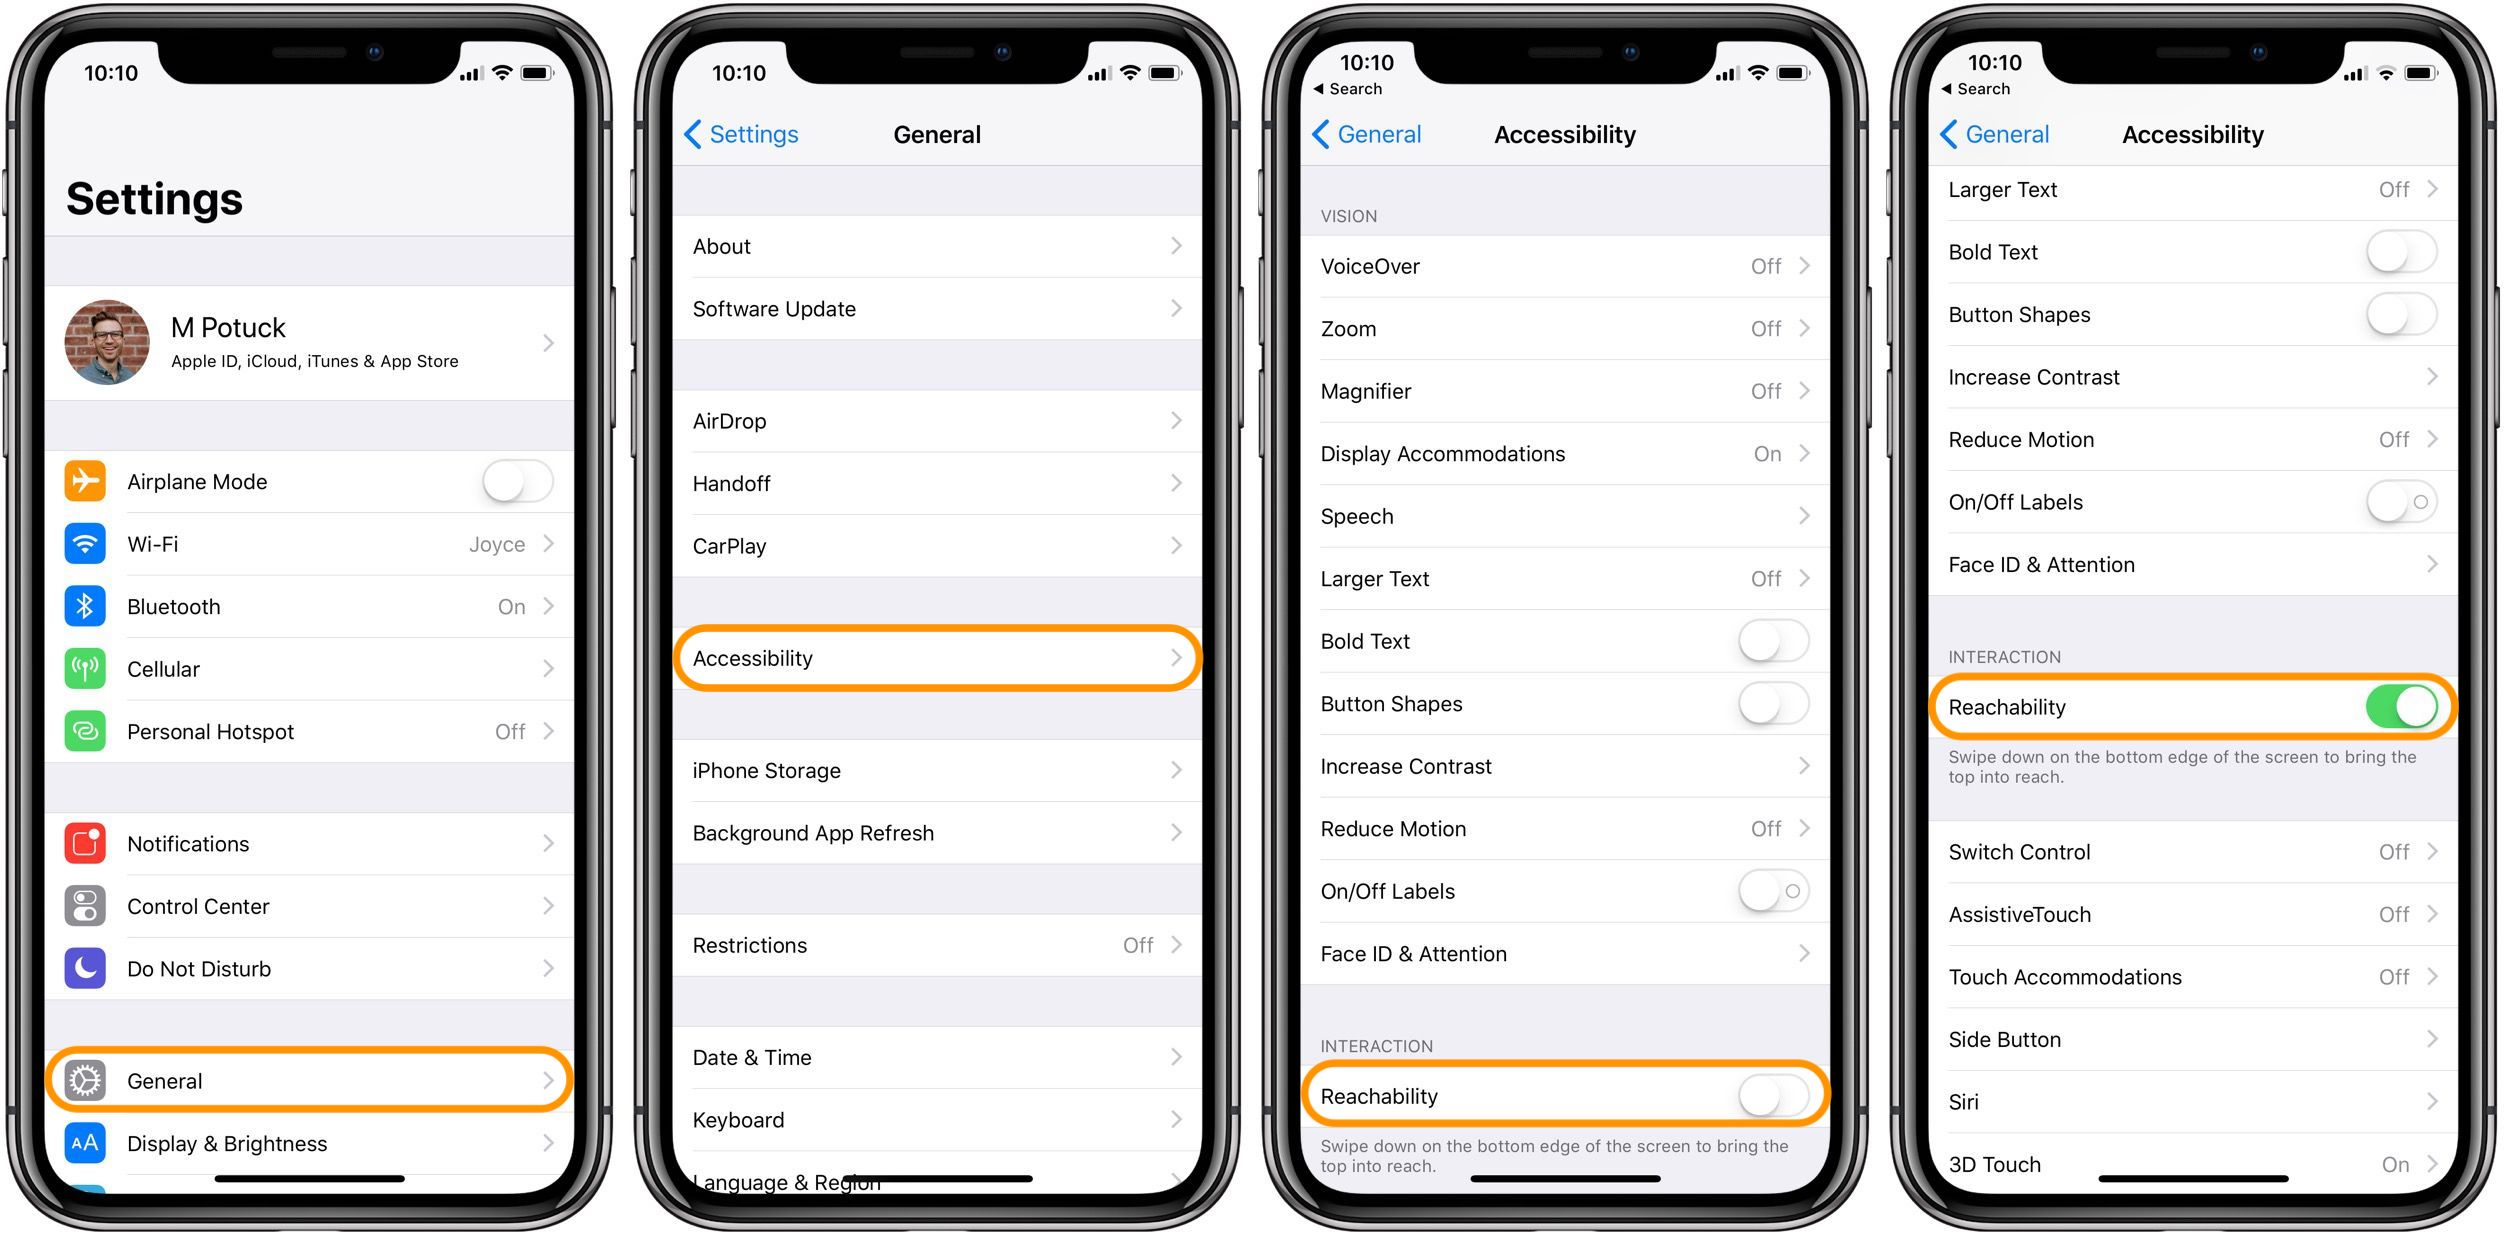 iPhone X: How to enable Reachability, make Control Center